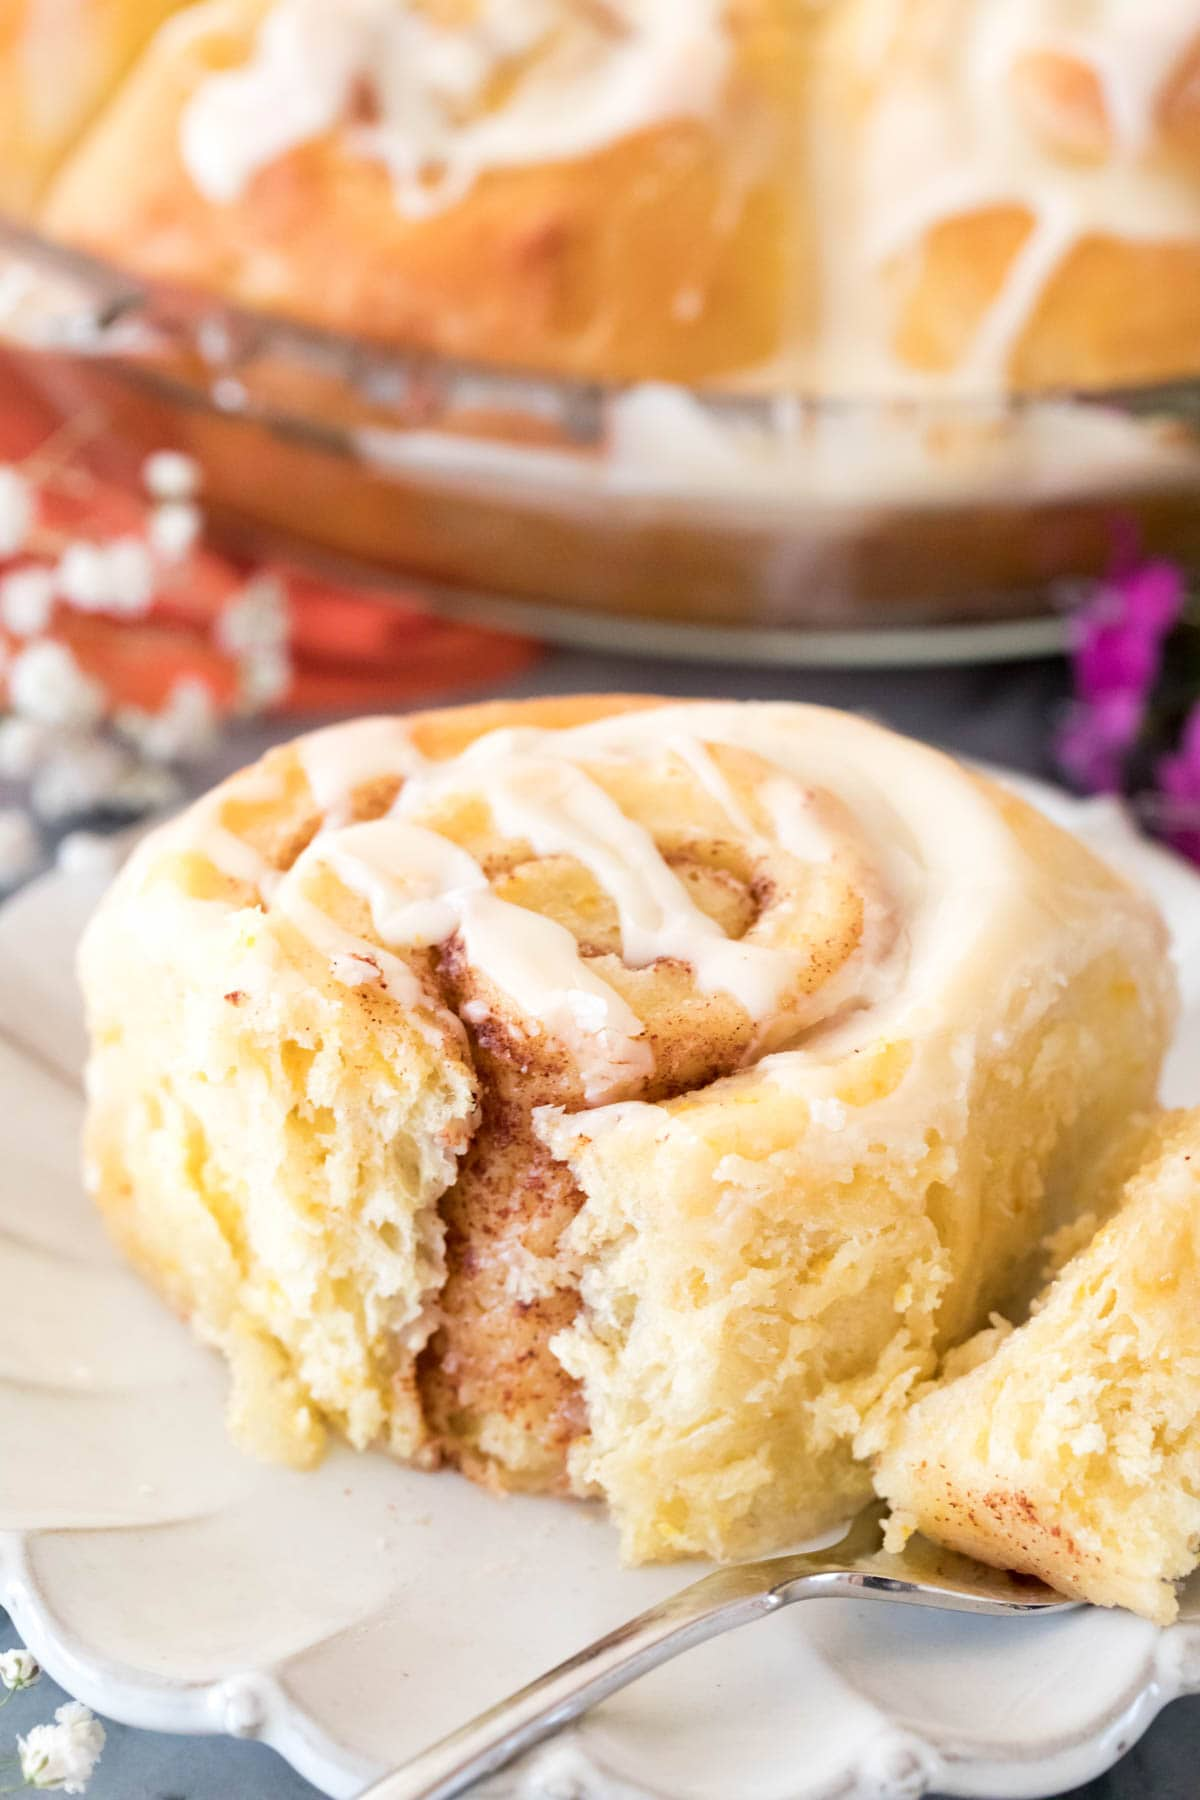 Closeup of iced orange sweet roll on a white plate